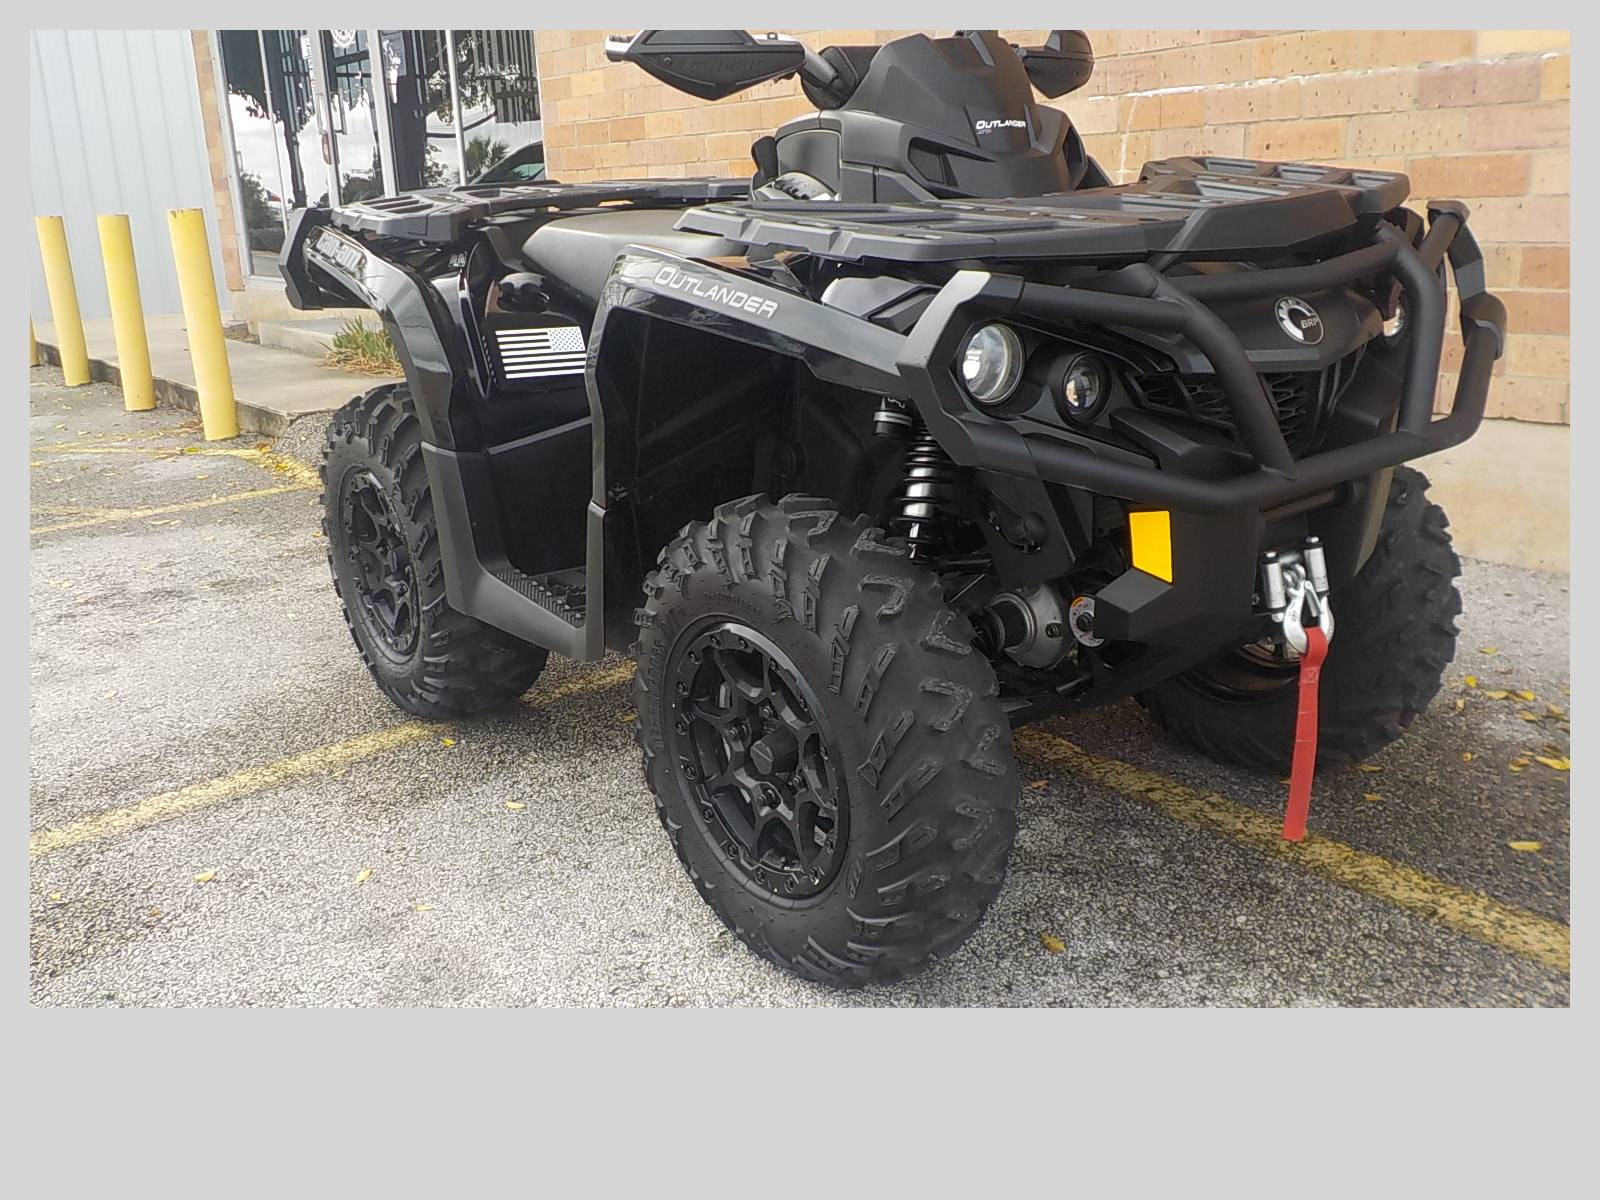 2018 Can-Am Outlander XT-P 1000R in San Antonio, Texas - Photo 4